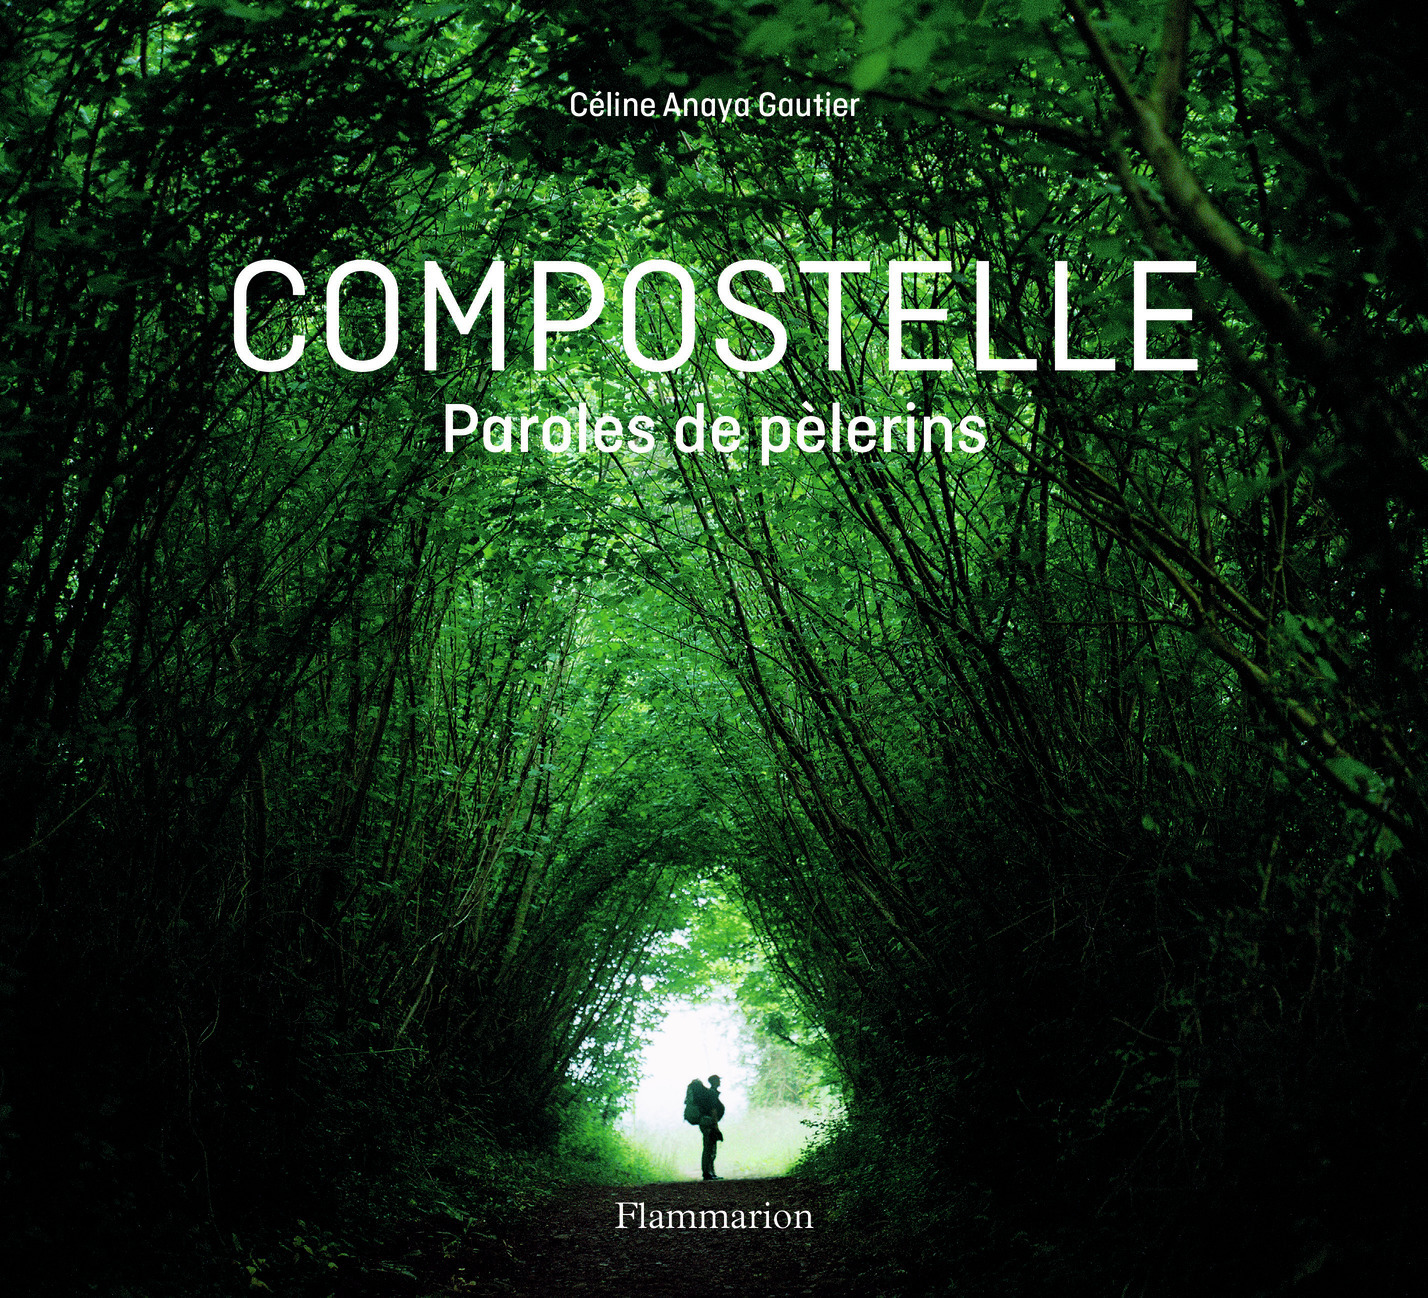 PHOTOGRAPHIE - COMPOSTELLE - PAROLES DE PELERINS